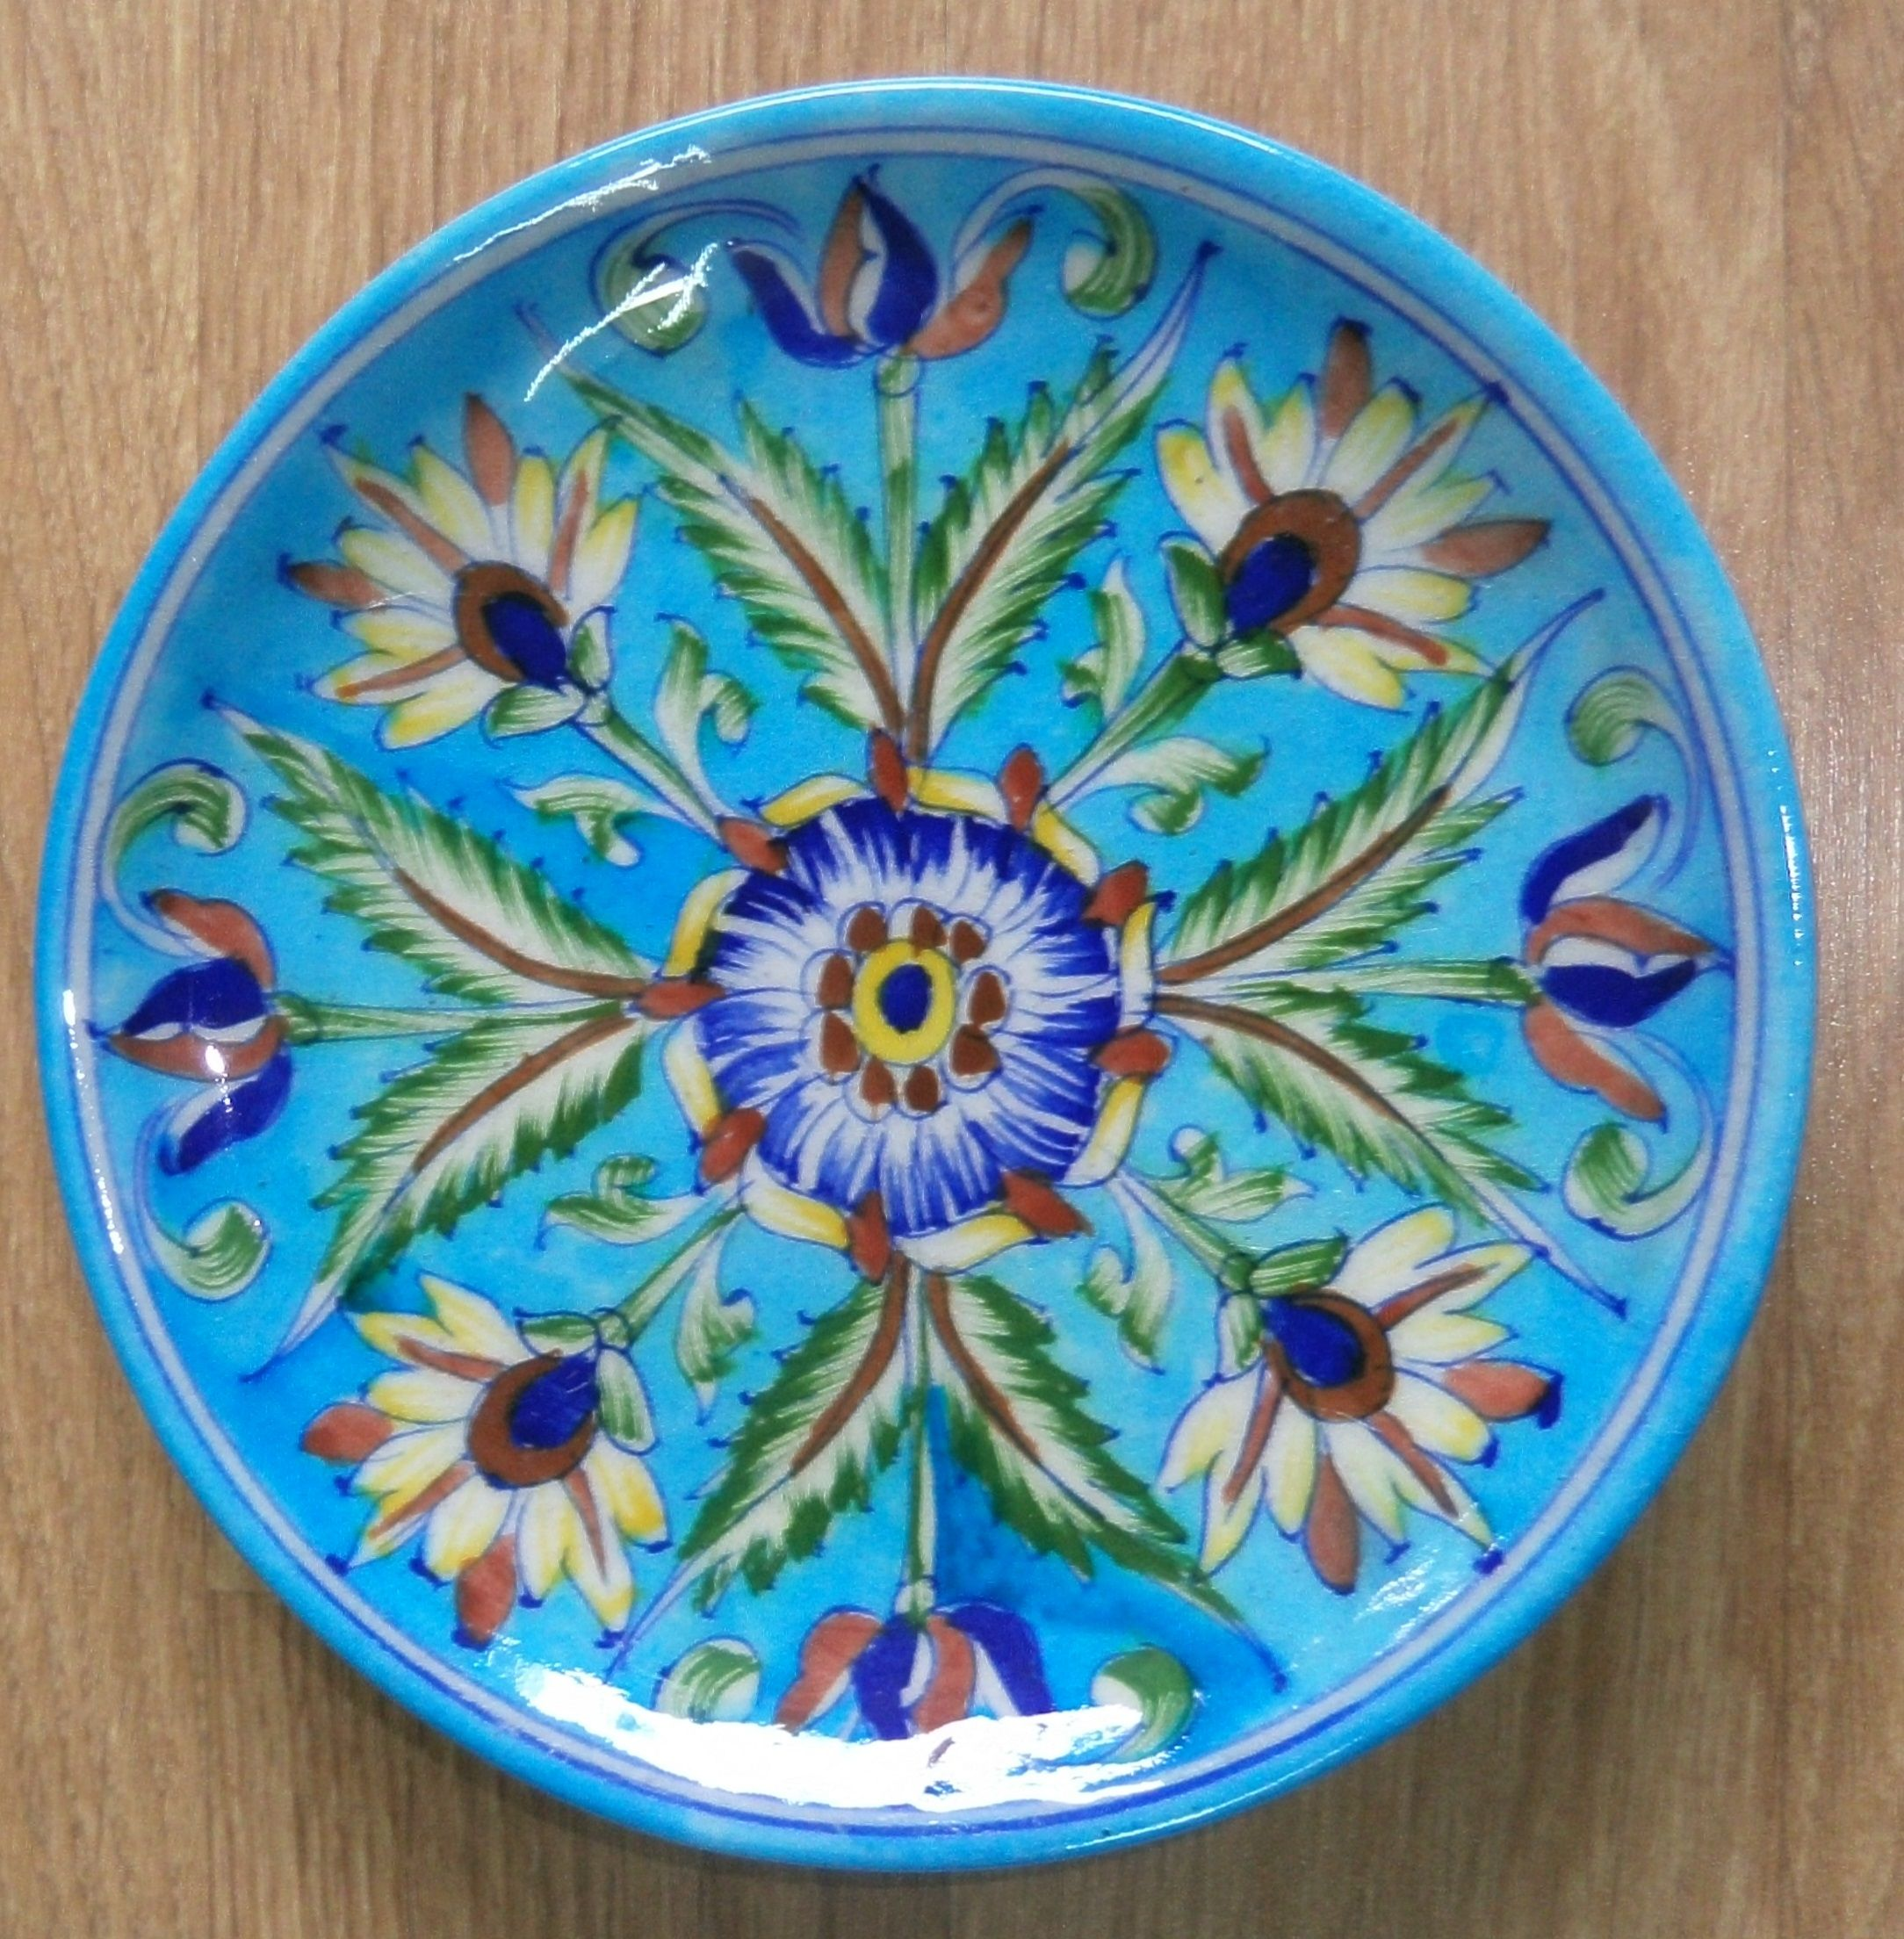 Blue Pottery Dinner Plate 8 In Turquoise Blue Pottery Pottery Decorative Tile